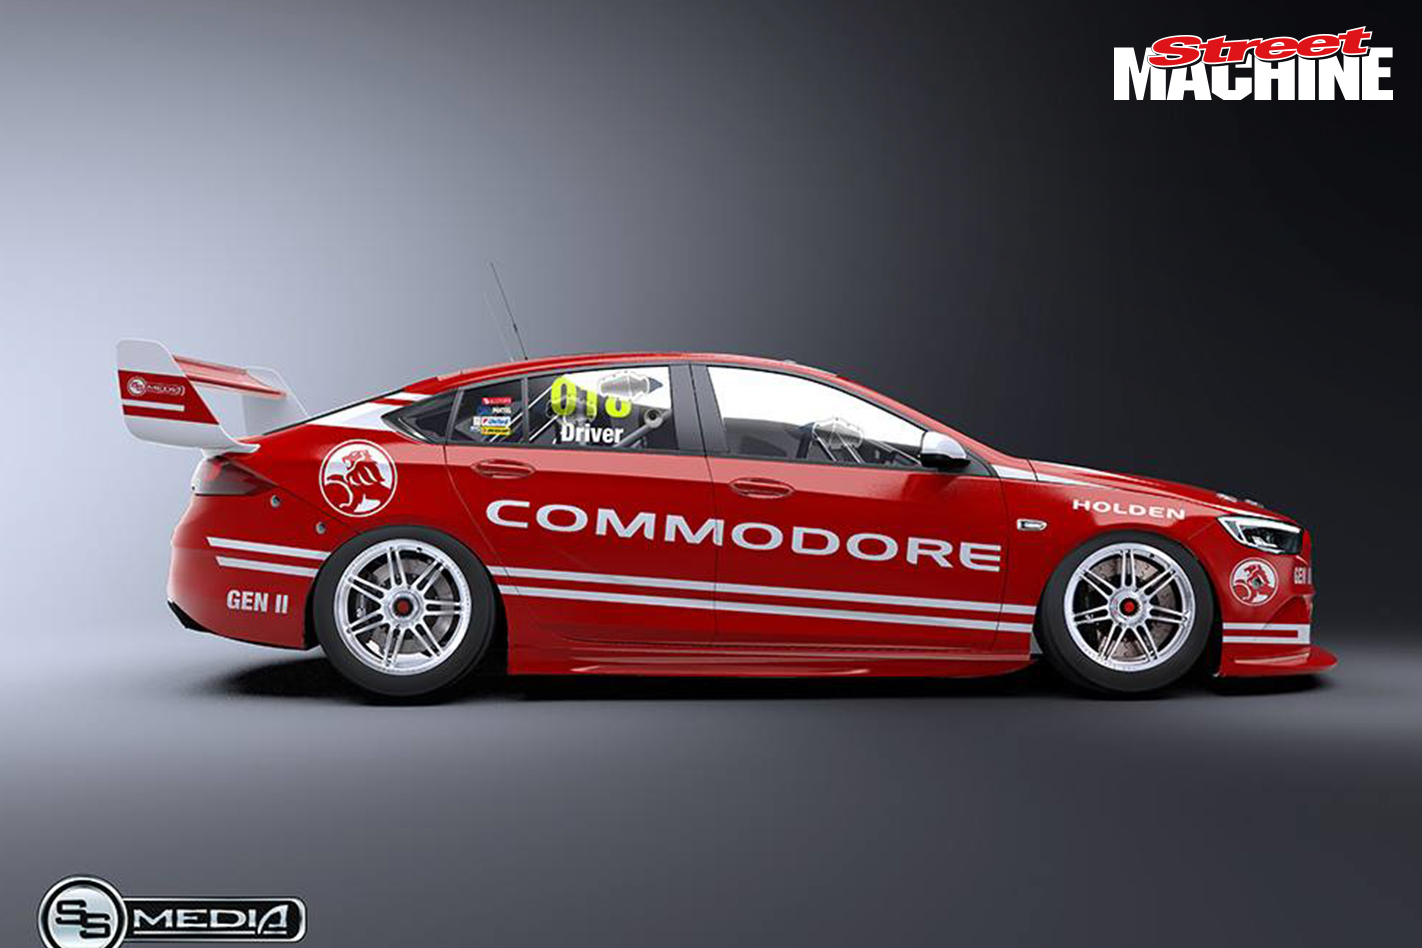 2018 Holden Commodore Supercars 4